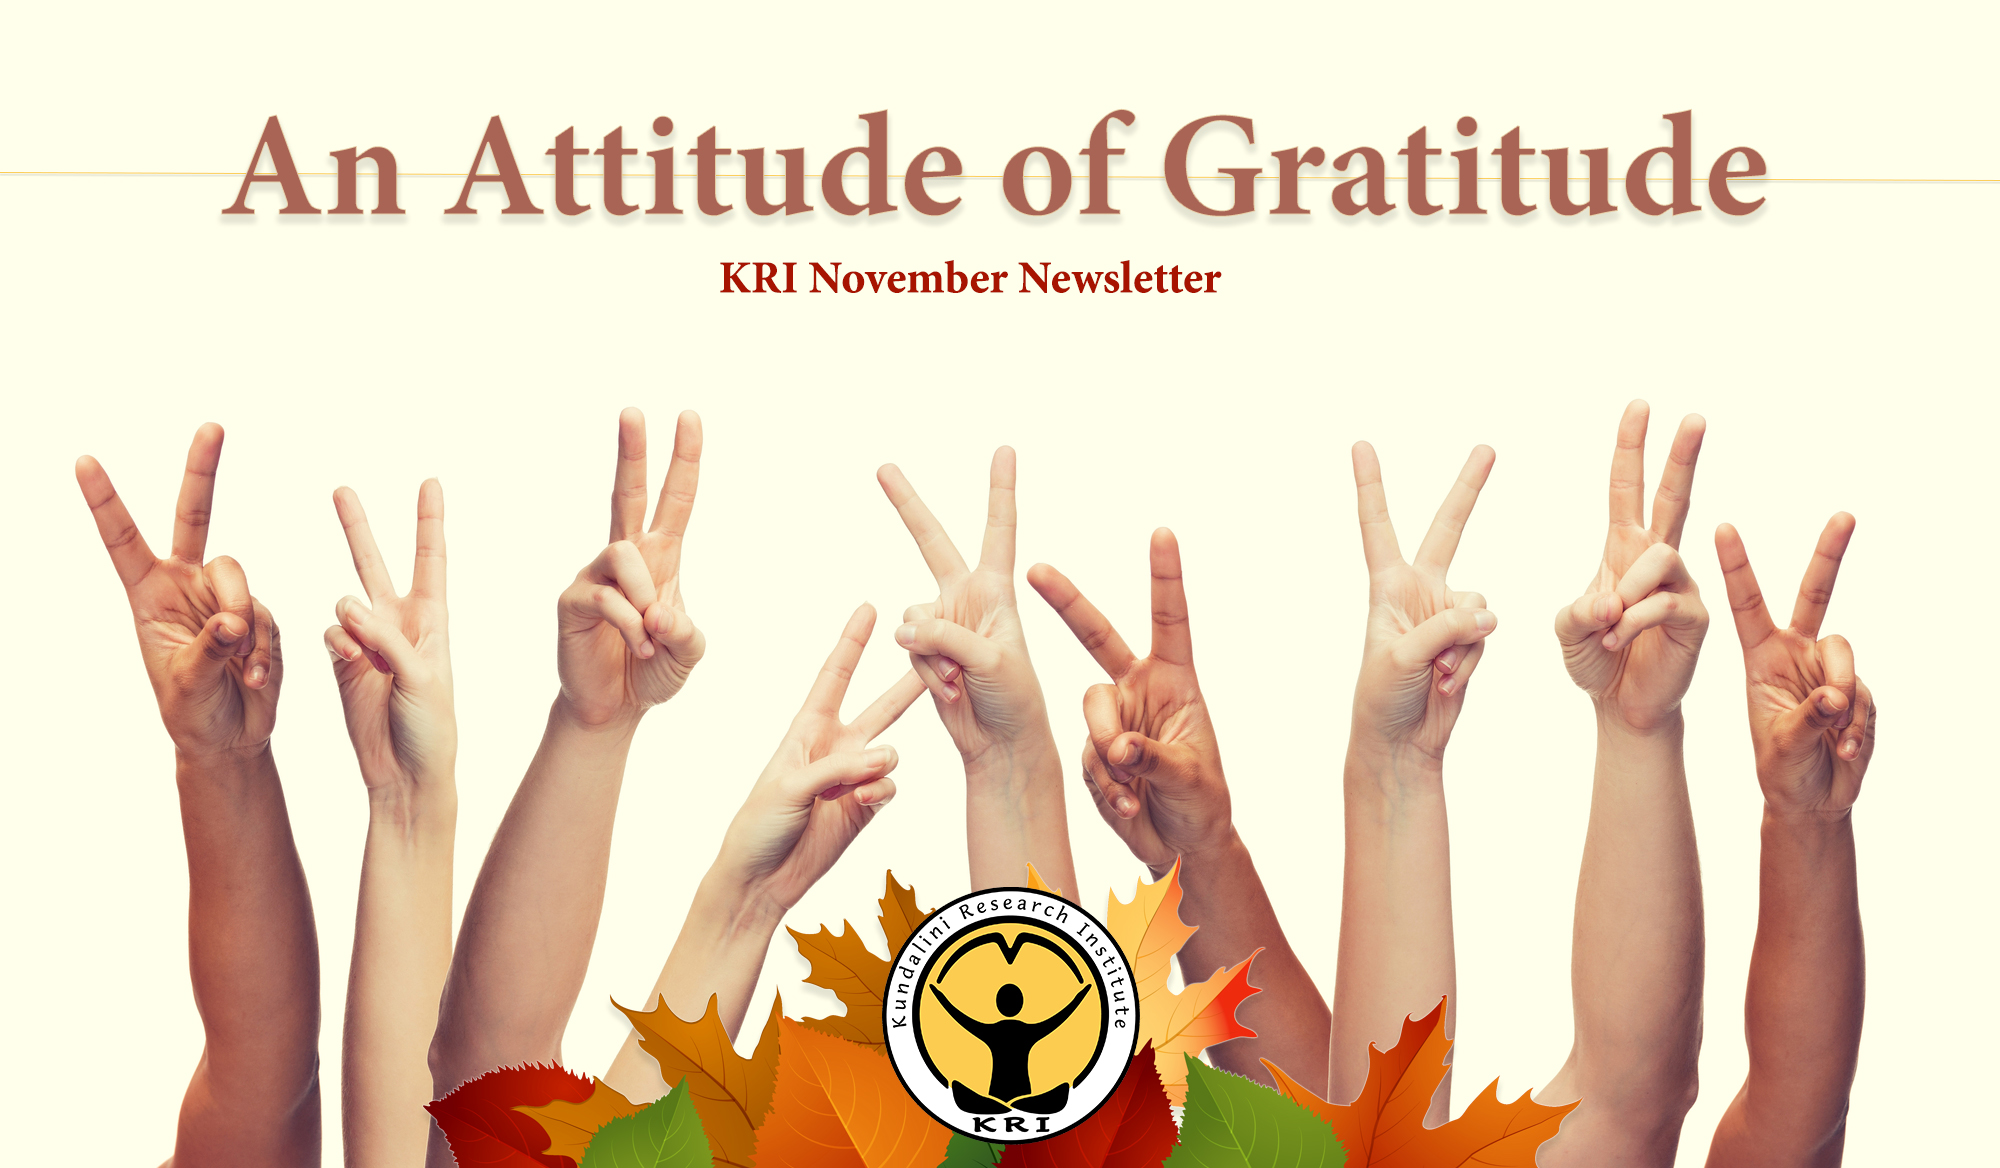 KRI November Newsletter